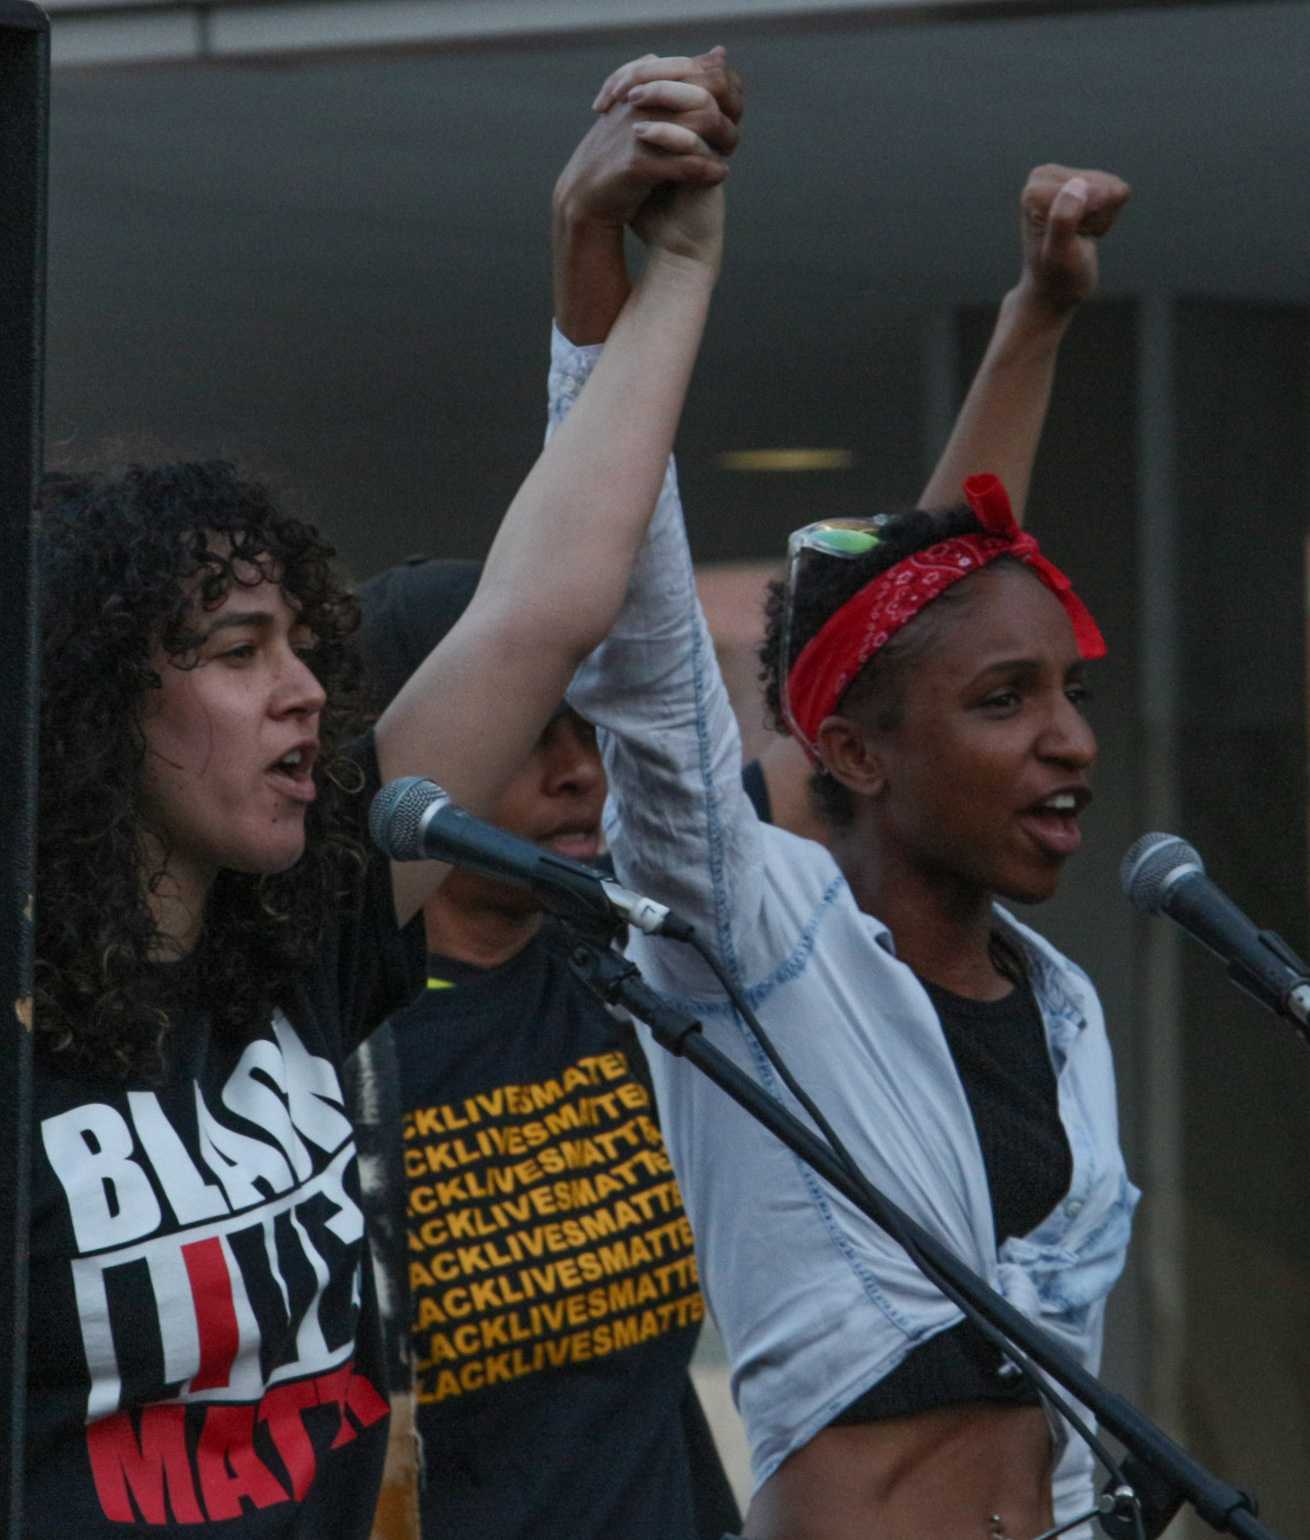 """Black Lives Matter leaders leading a chant, """"Remember the lives lost to police brutality,""""  at the Women's strike in Downtown Los Angeles, California on March 8th (photo by José Aguila)"""